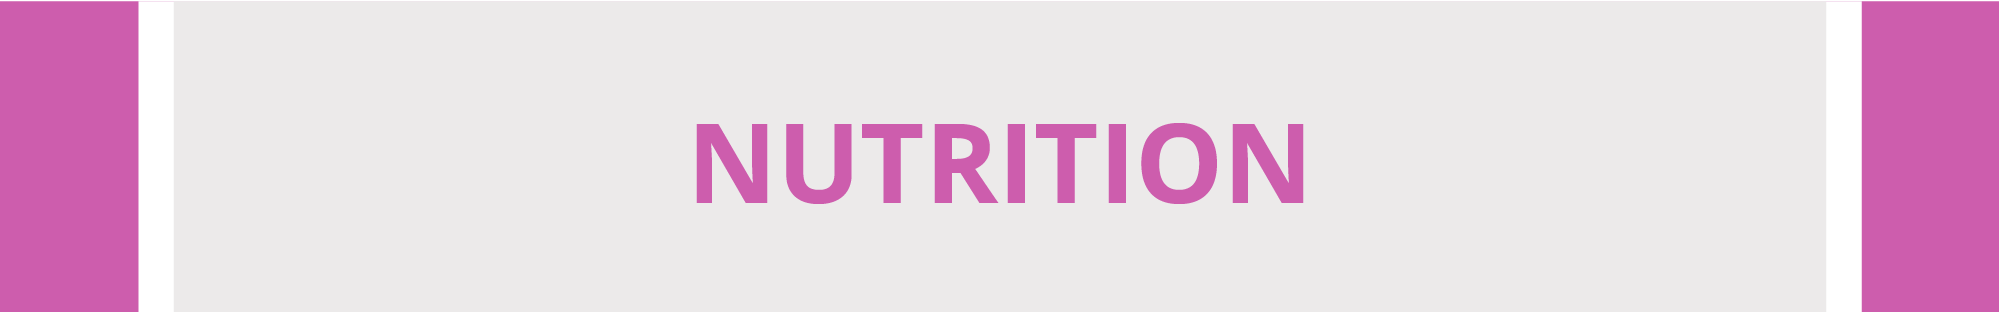 nutrition-banner-2018_Top.png